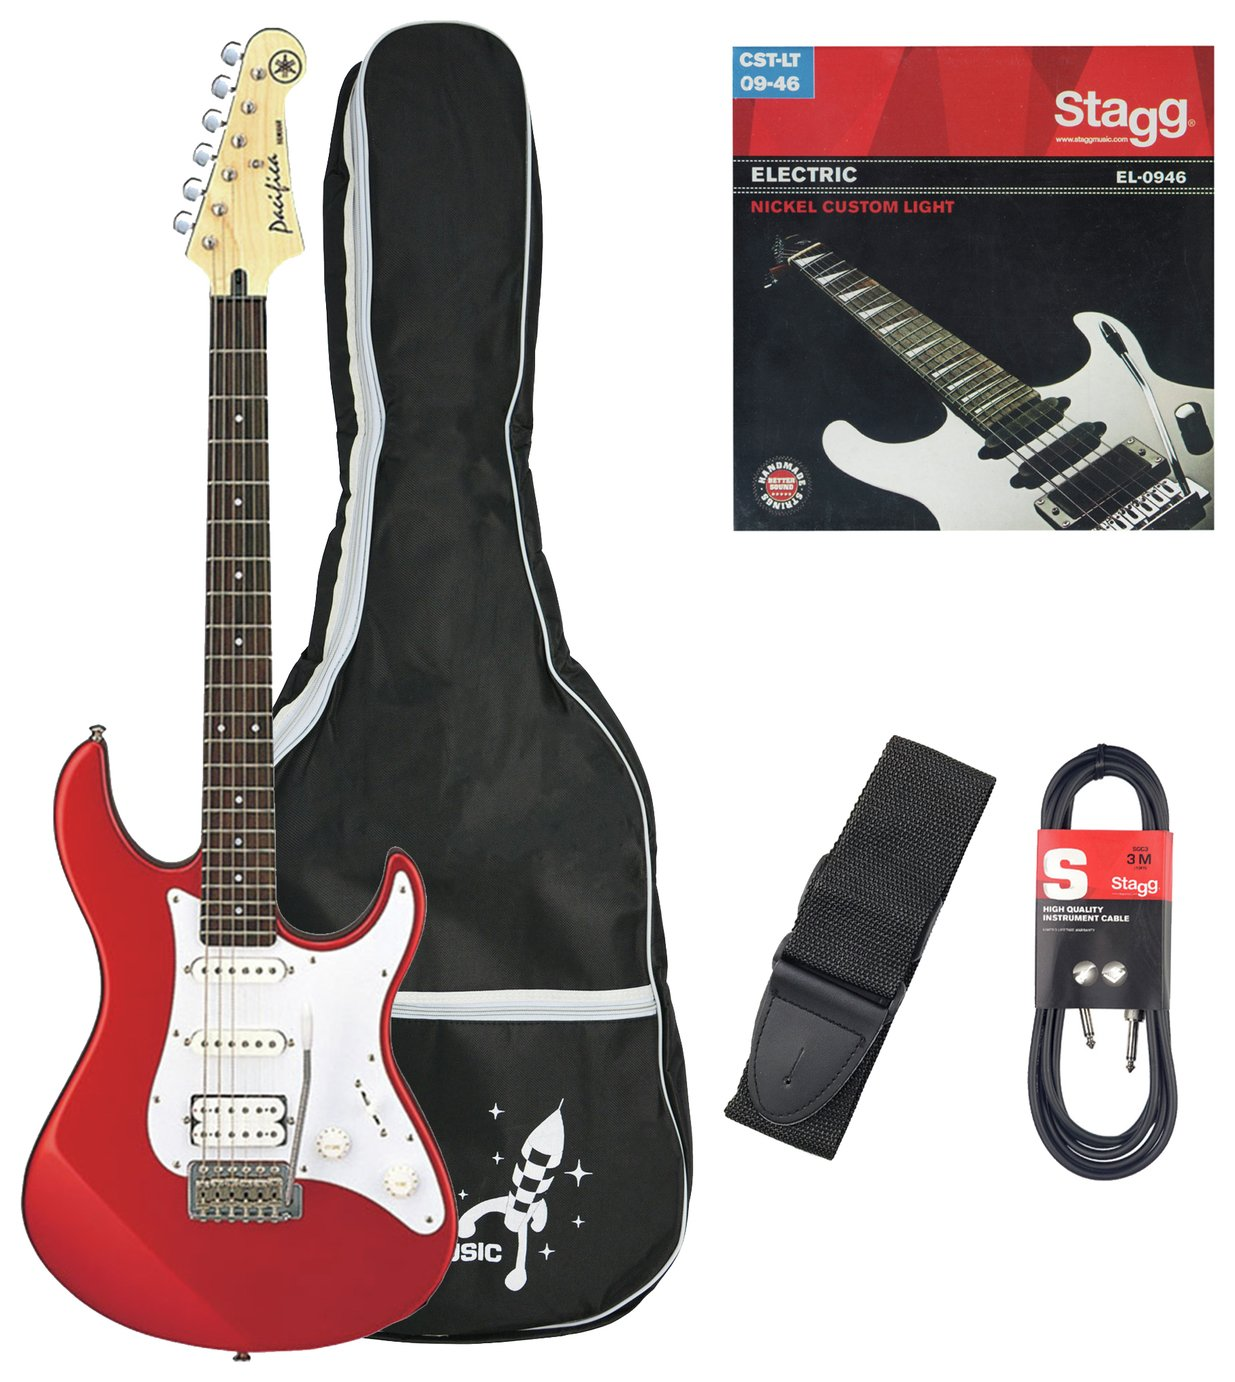 Yamaha Pacifica Electric Guitar - Red